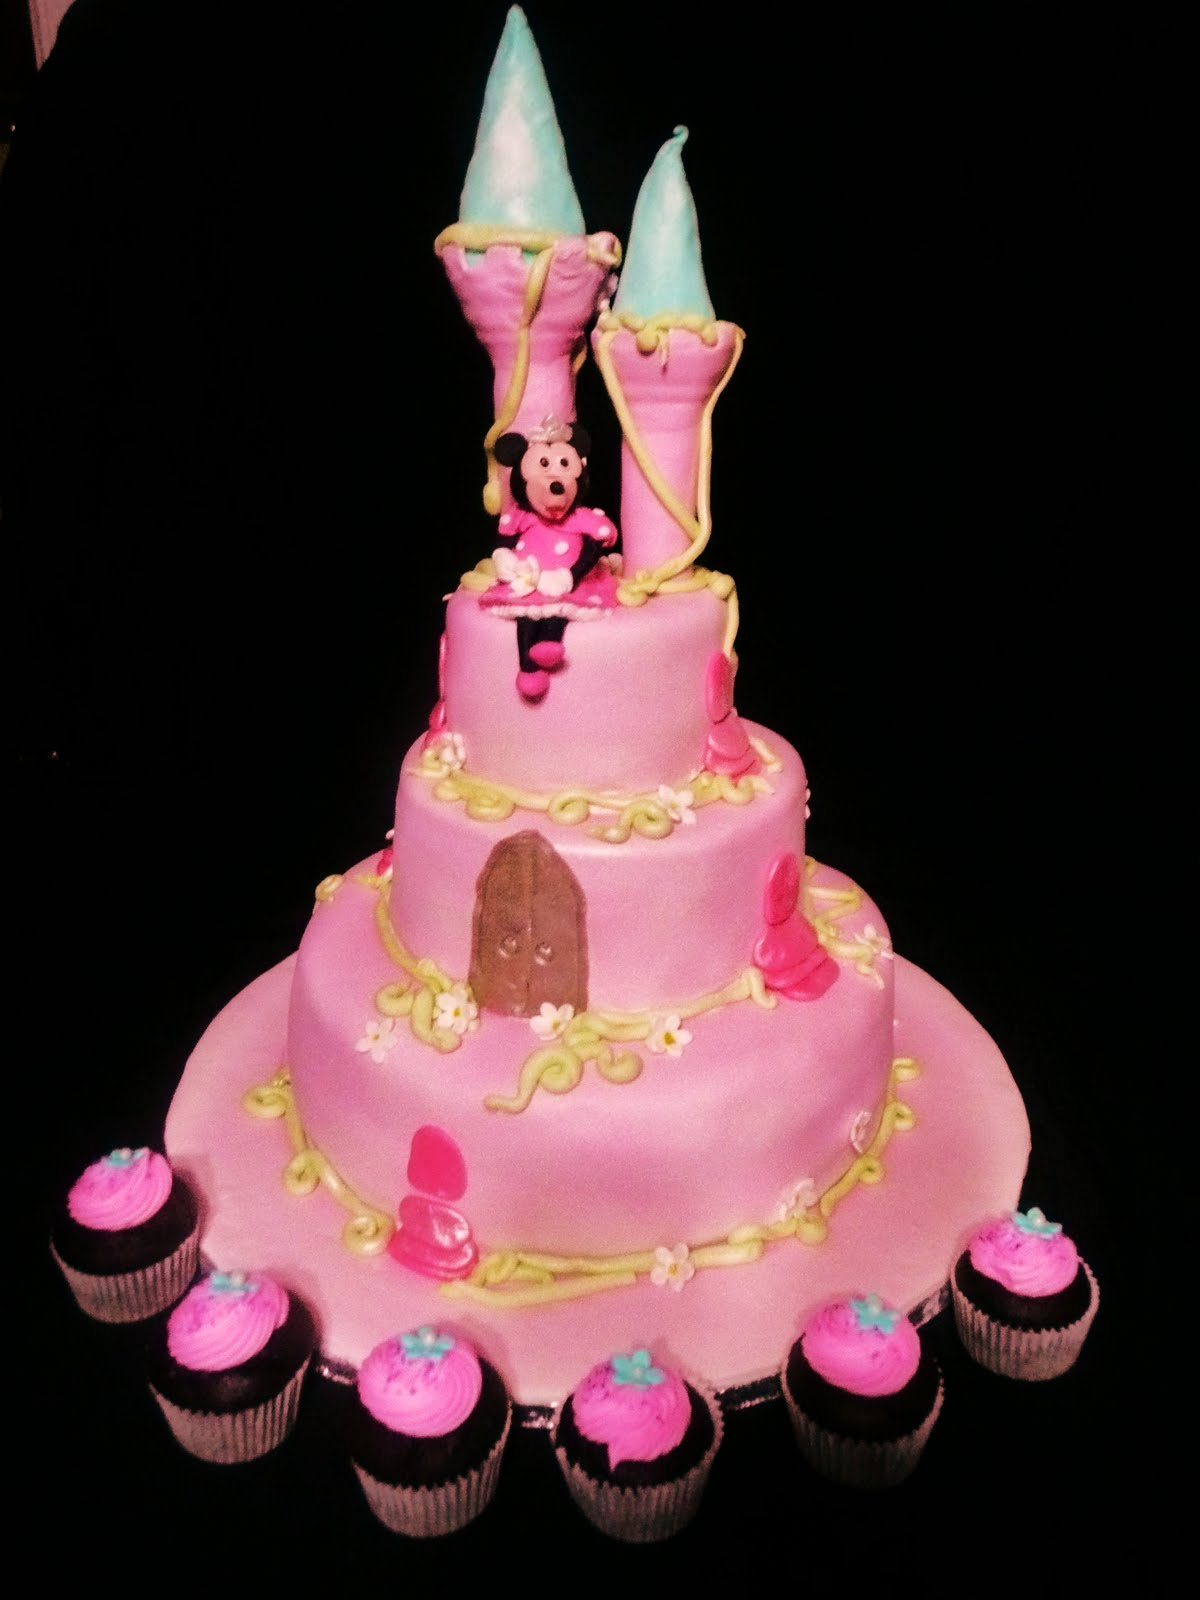 Birthday Cake Pic For Little Girl : Little Girl Birthday Cakes